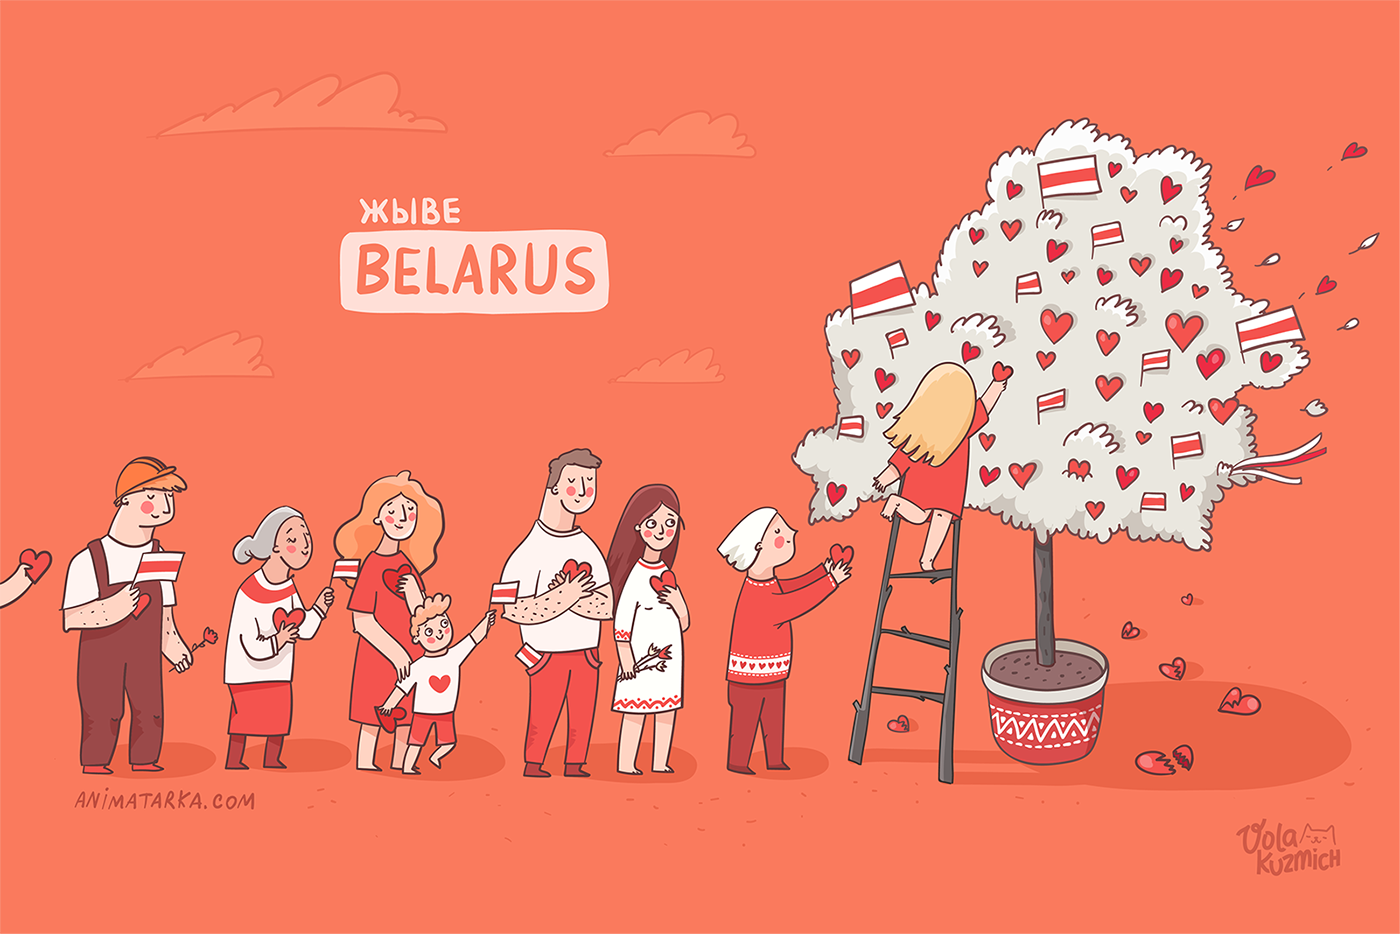 belarus belarus flag families hearts Love people protest red Solidarity support